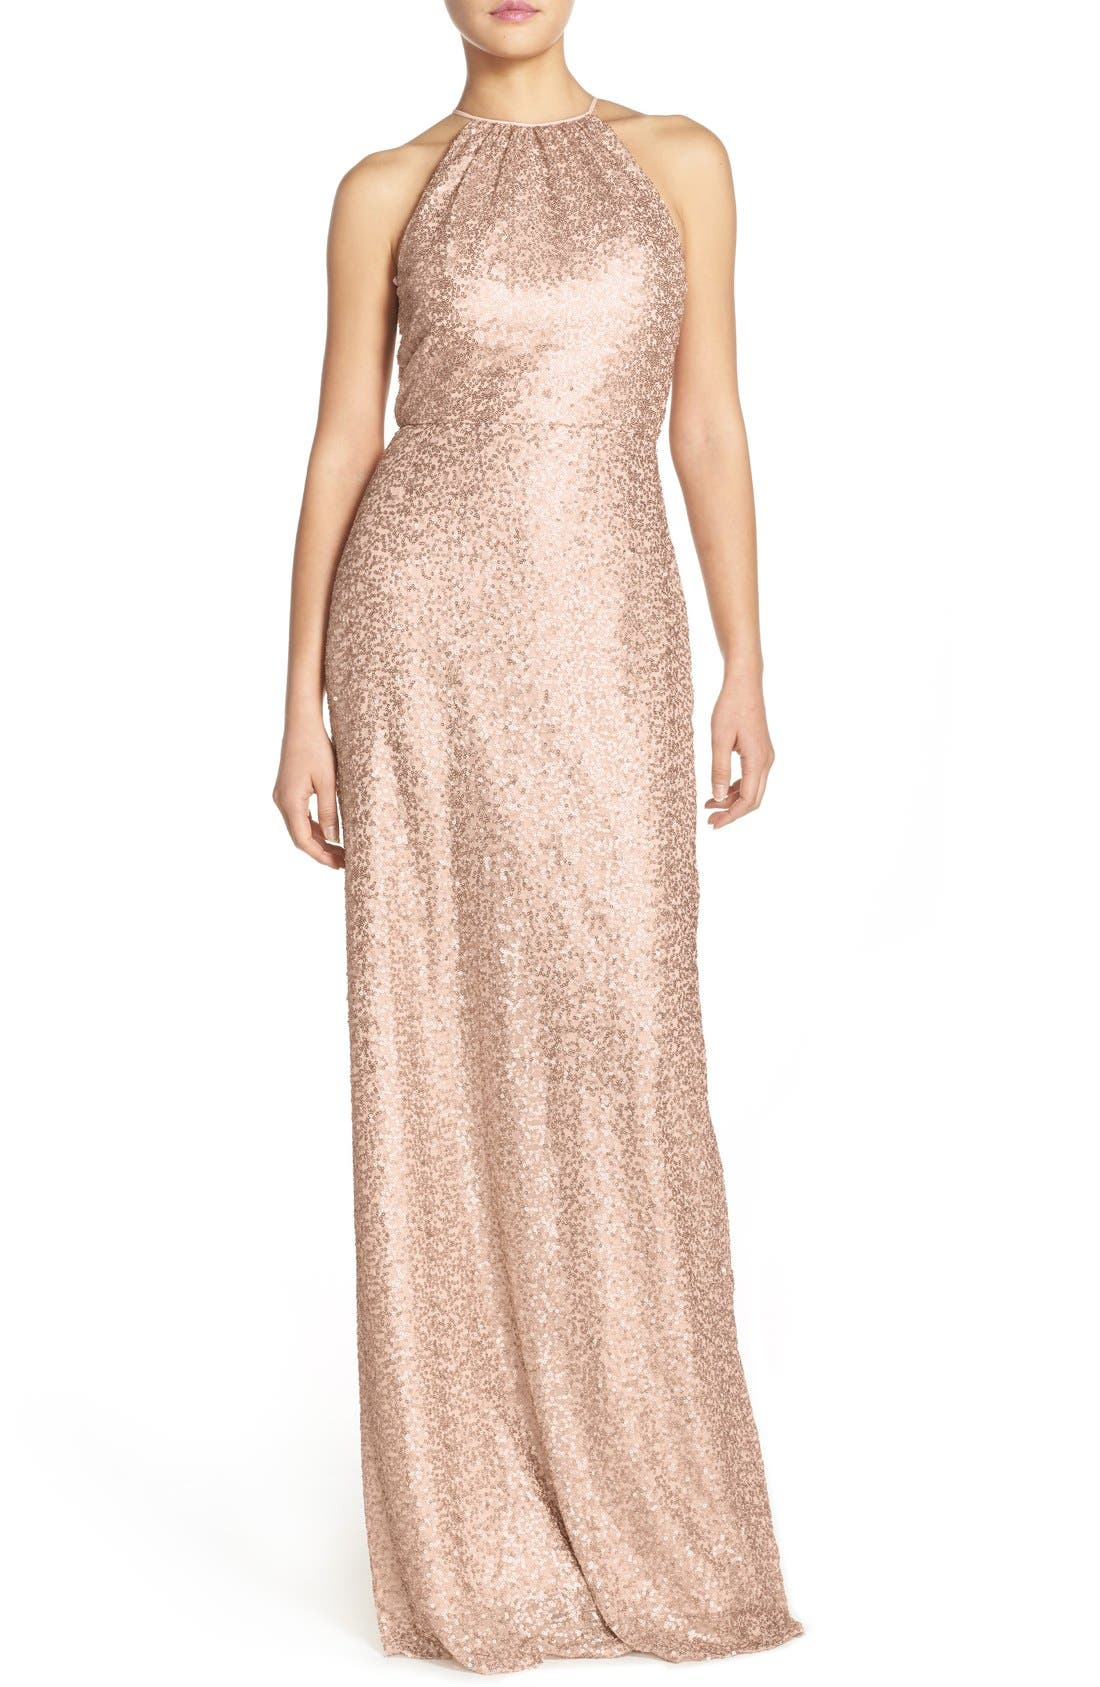 Main Image - Amsale 'Chandler' Sequin Tulle Halter Style Gown